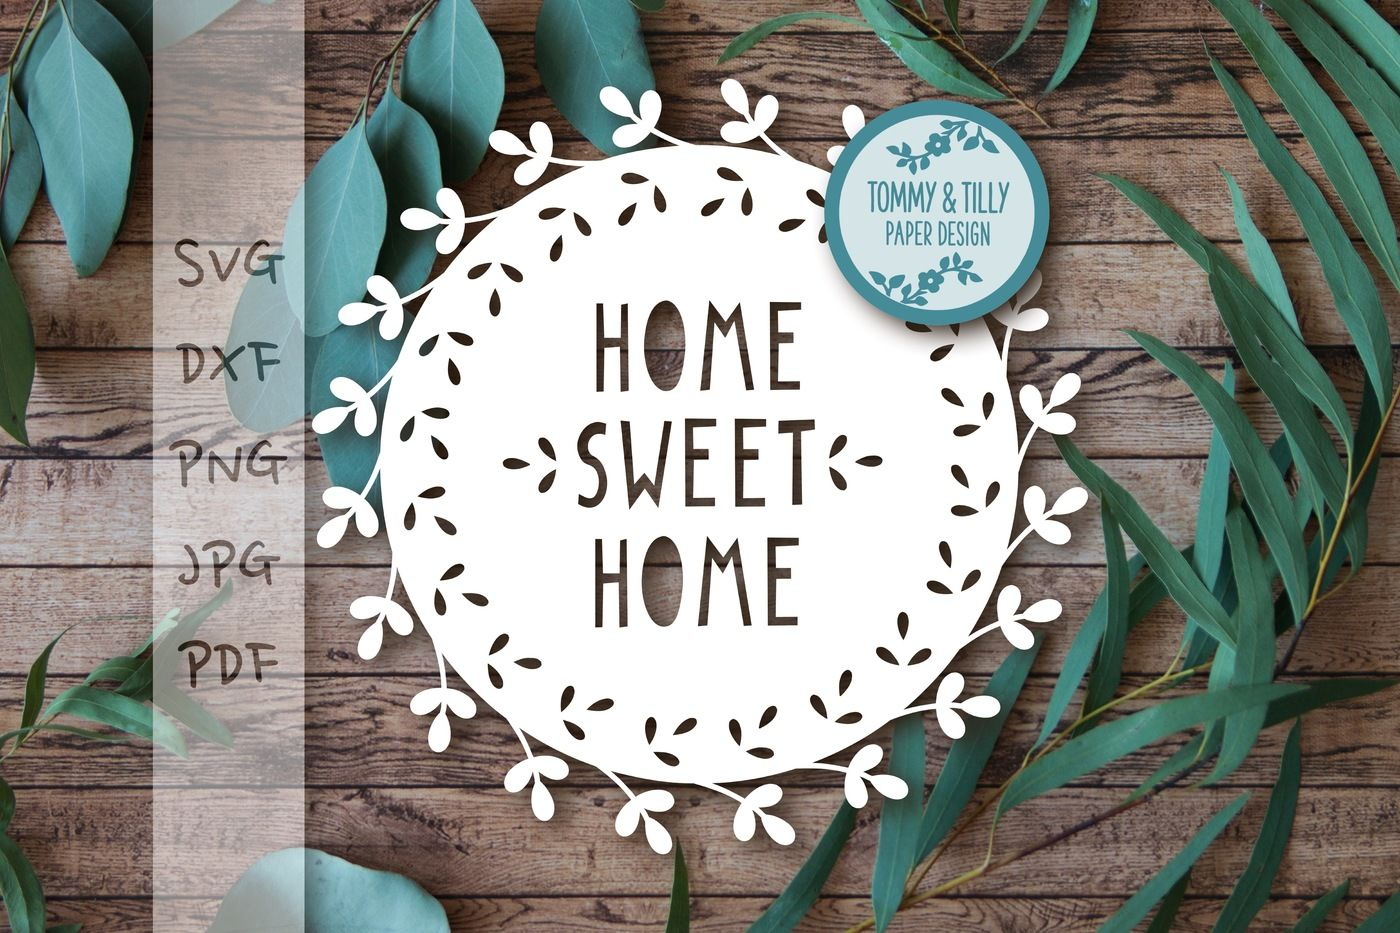 Home Sweet Home Wreath Svg Dxf Png Pdf Jpg By Tommy And Tilly